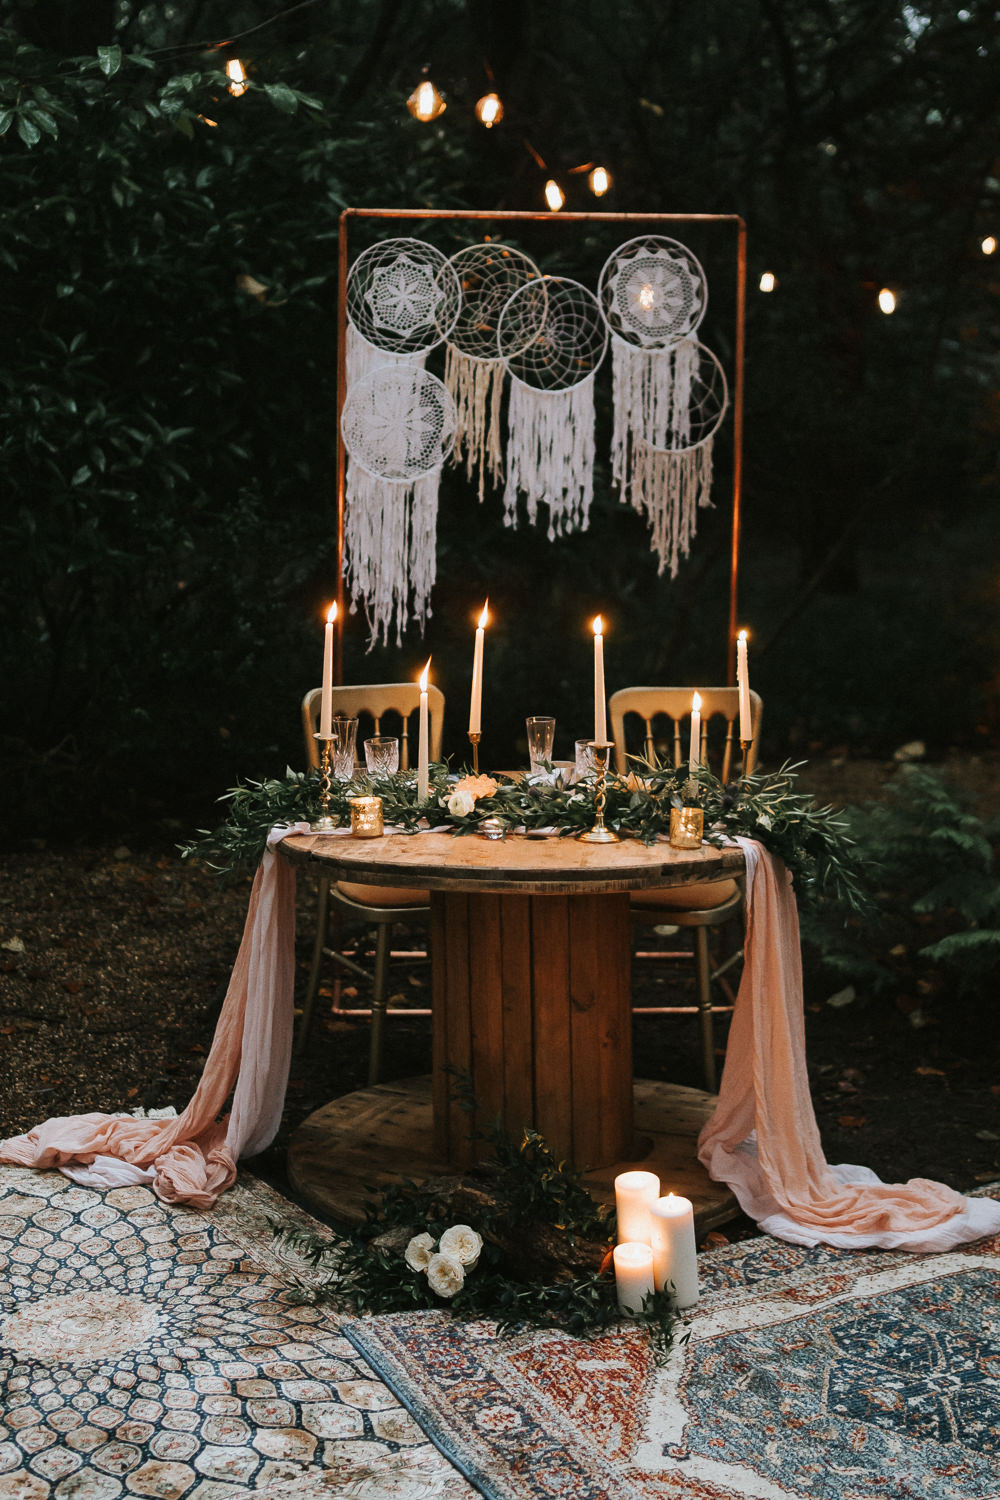 Sweetheart Table Candles Greenery Place Setting Macrame Backdrop Woodland Wedding Inspiration Stephanie Dreams Photography